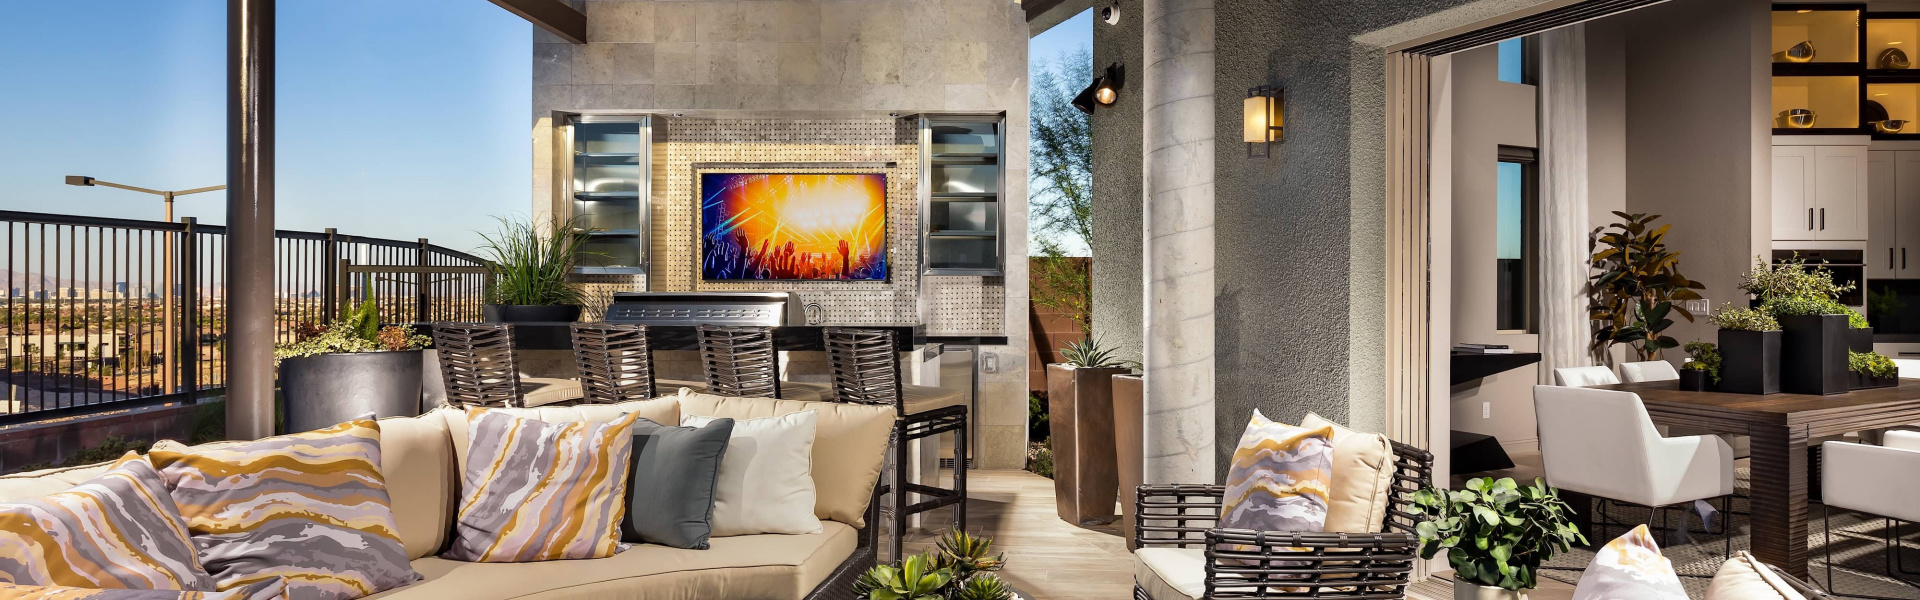 Smart home installation by Acoustic Design Systems for Las Vegas